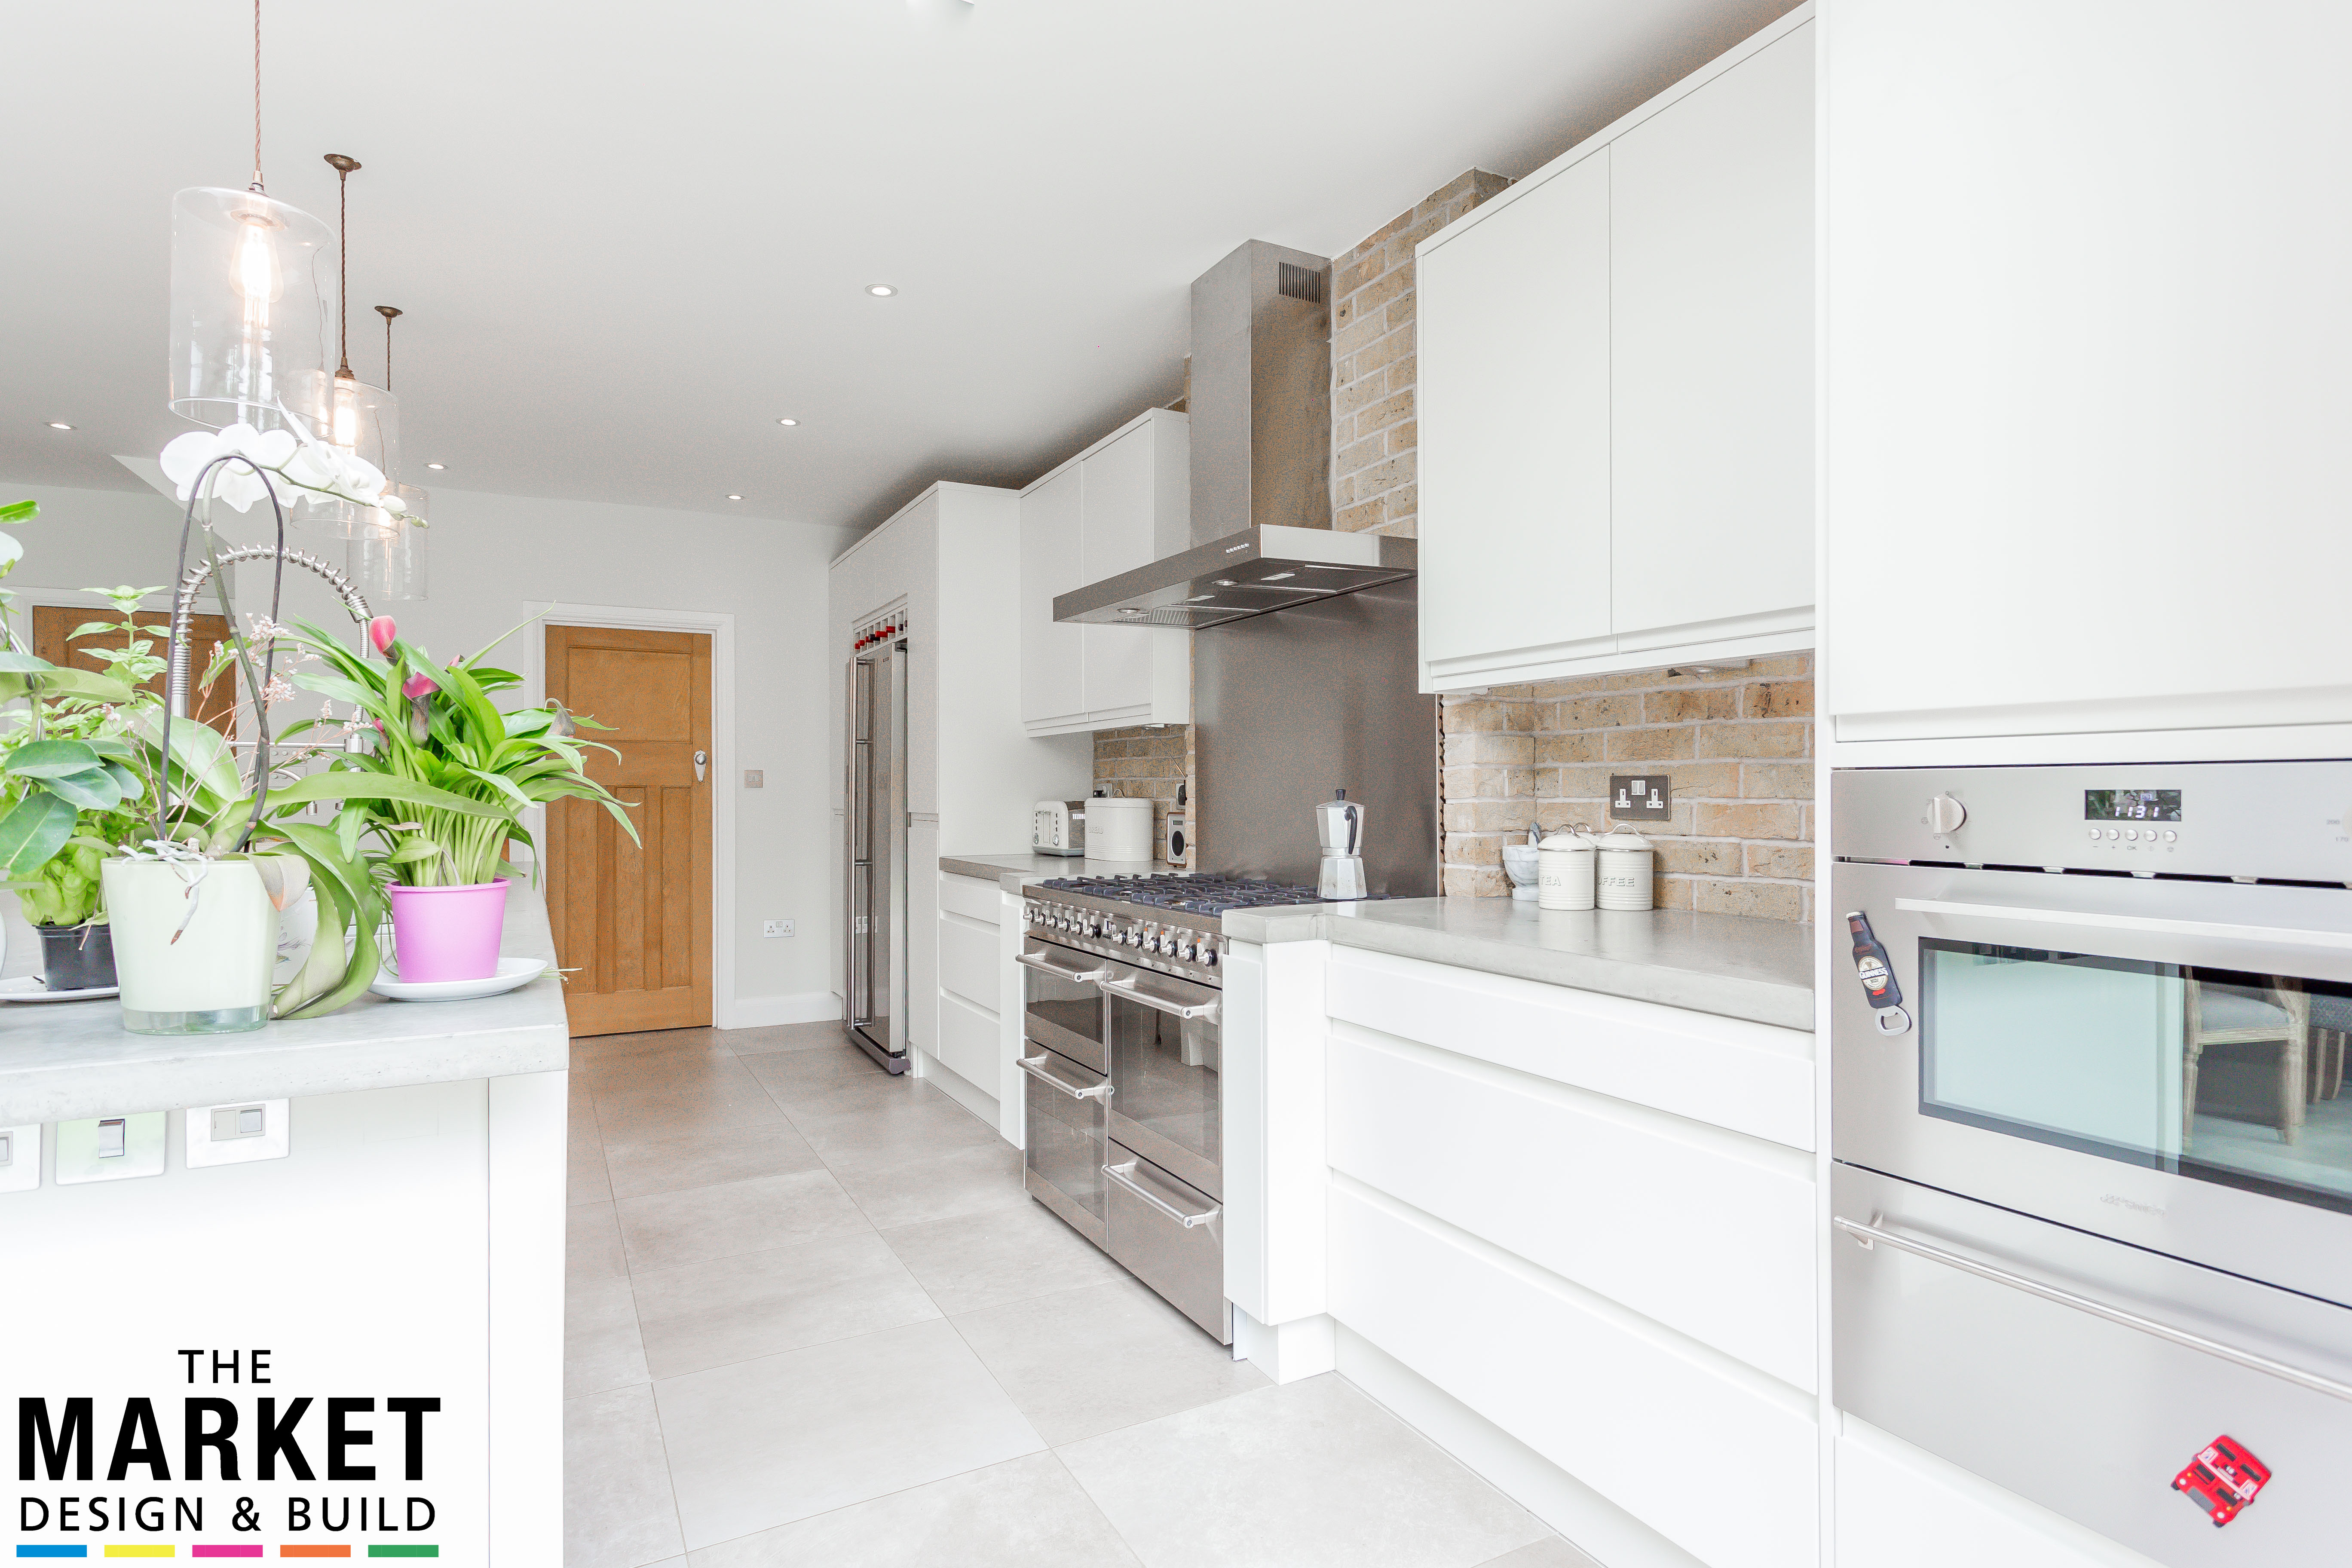 Case Study for Stunning North London Home Extension and Loft Conversion